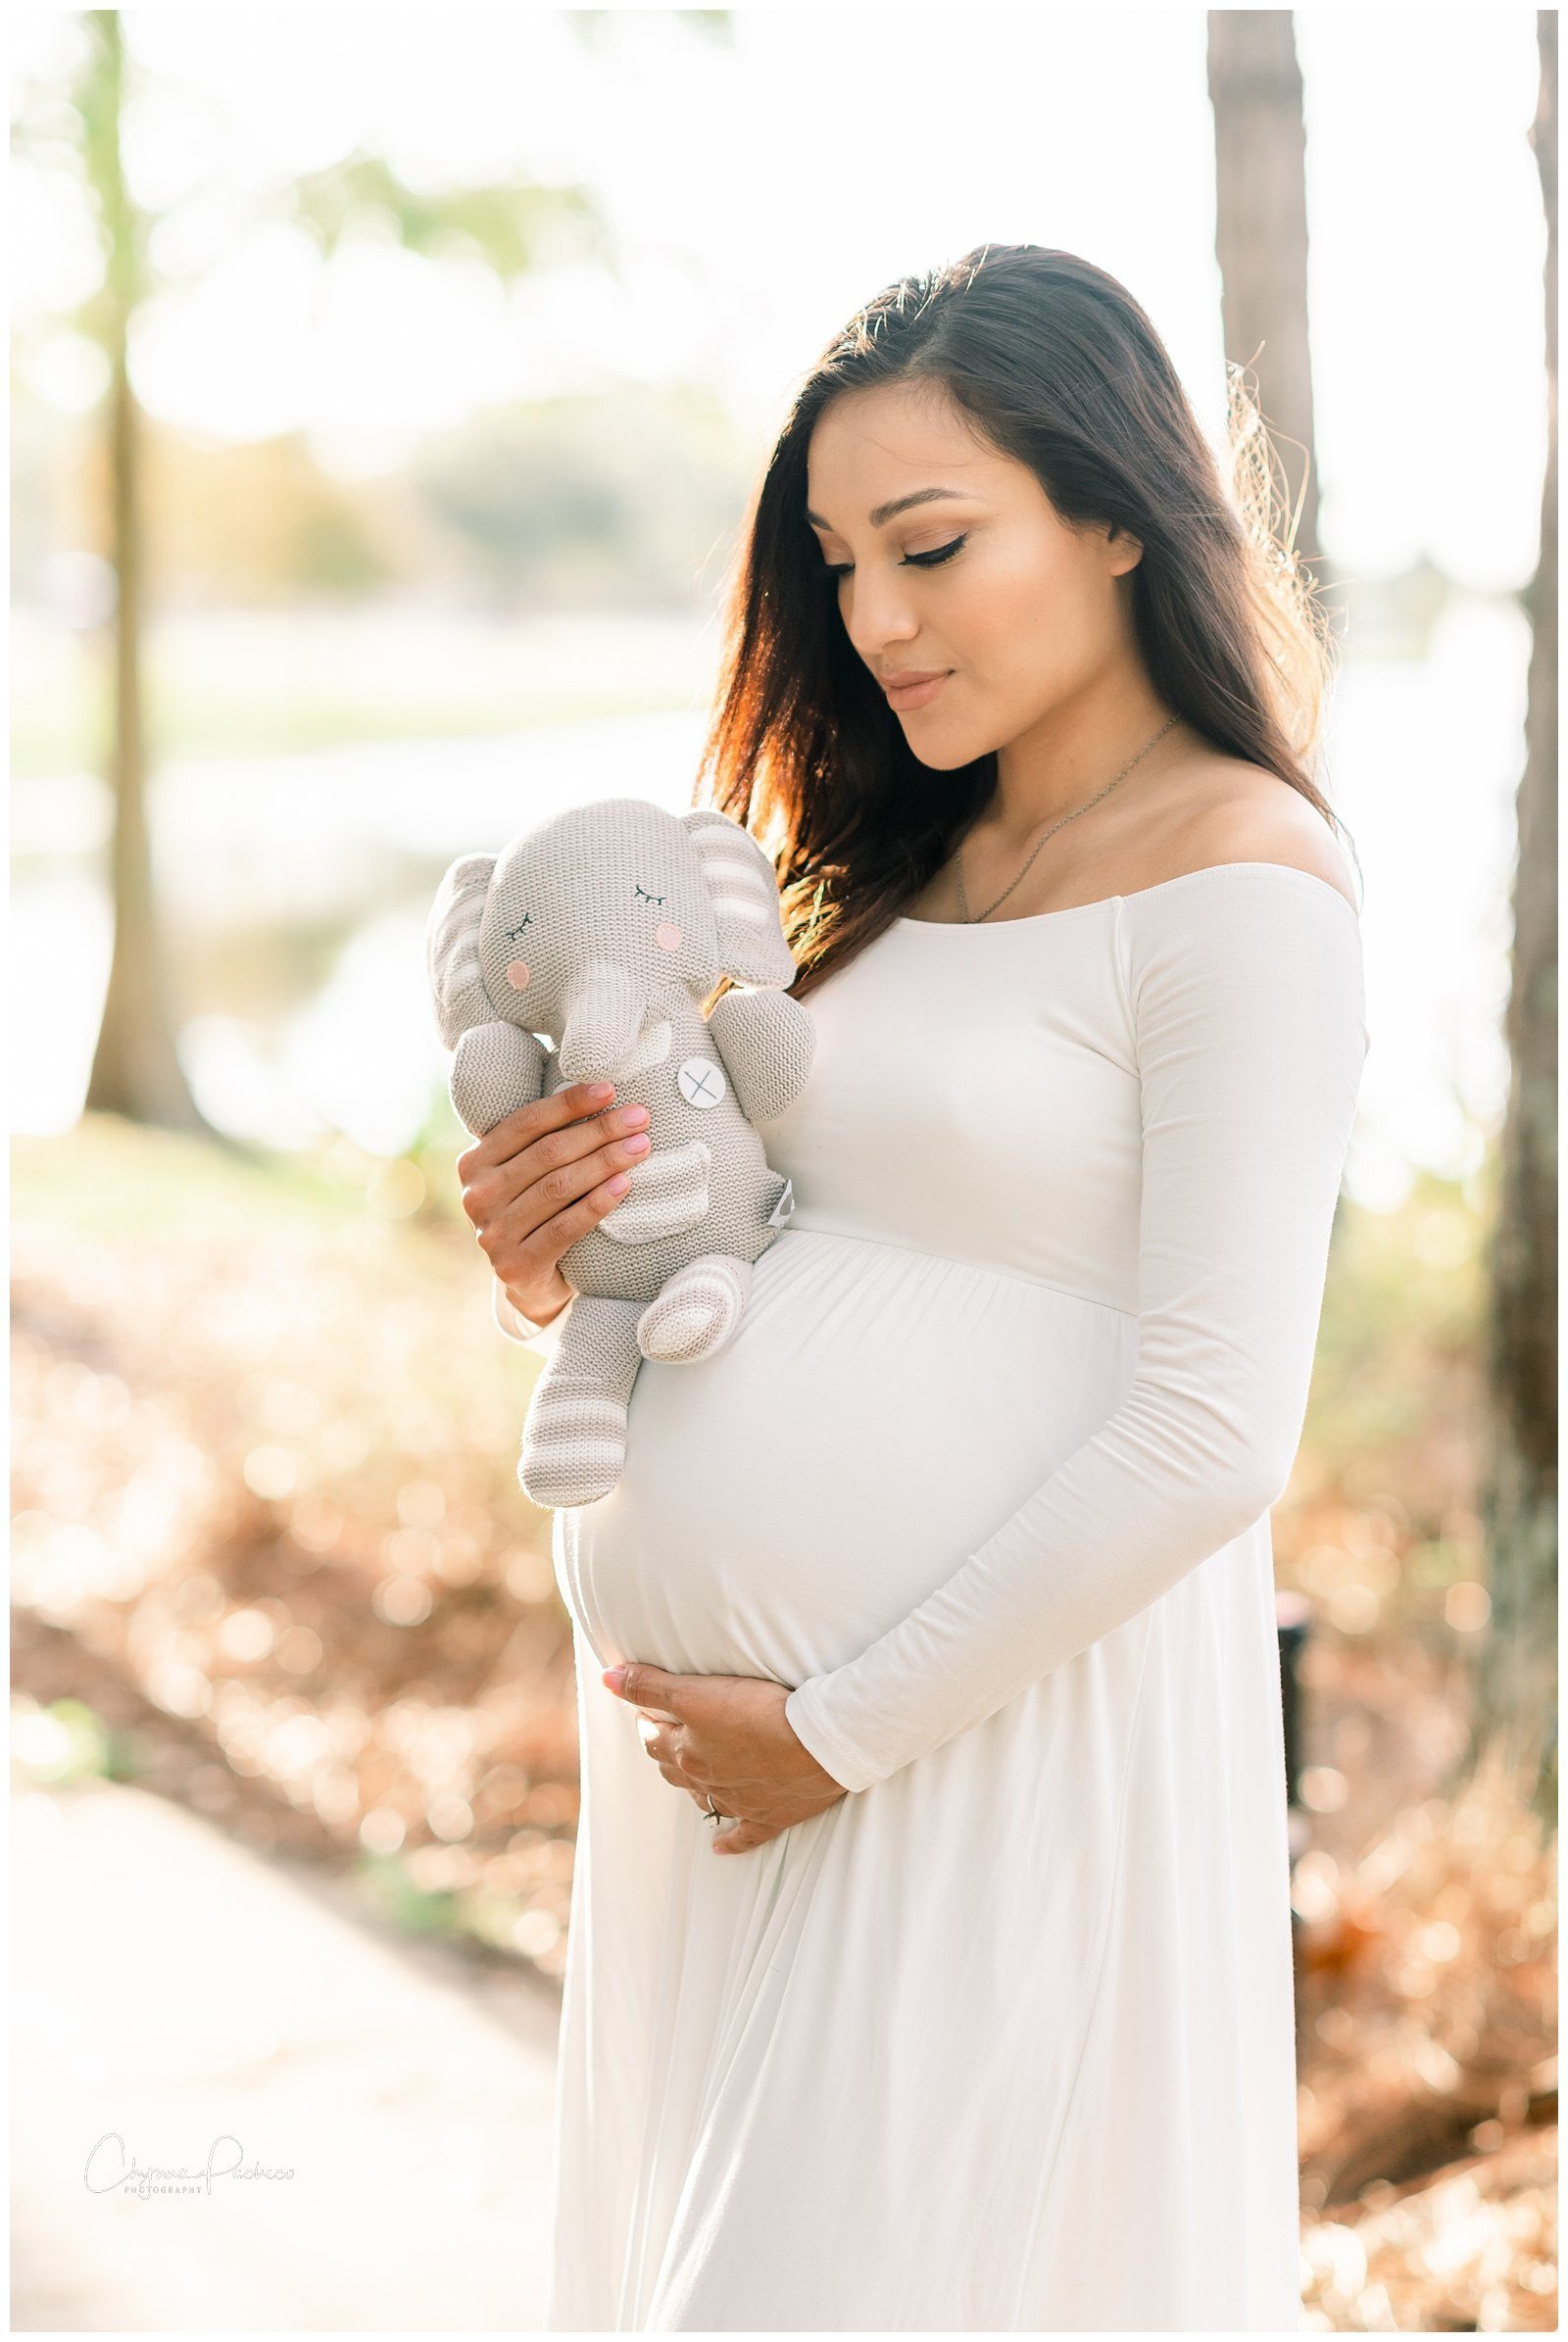 Orlando_Maternity_Photos_1029